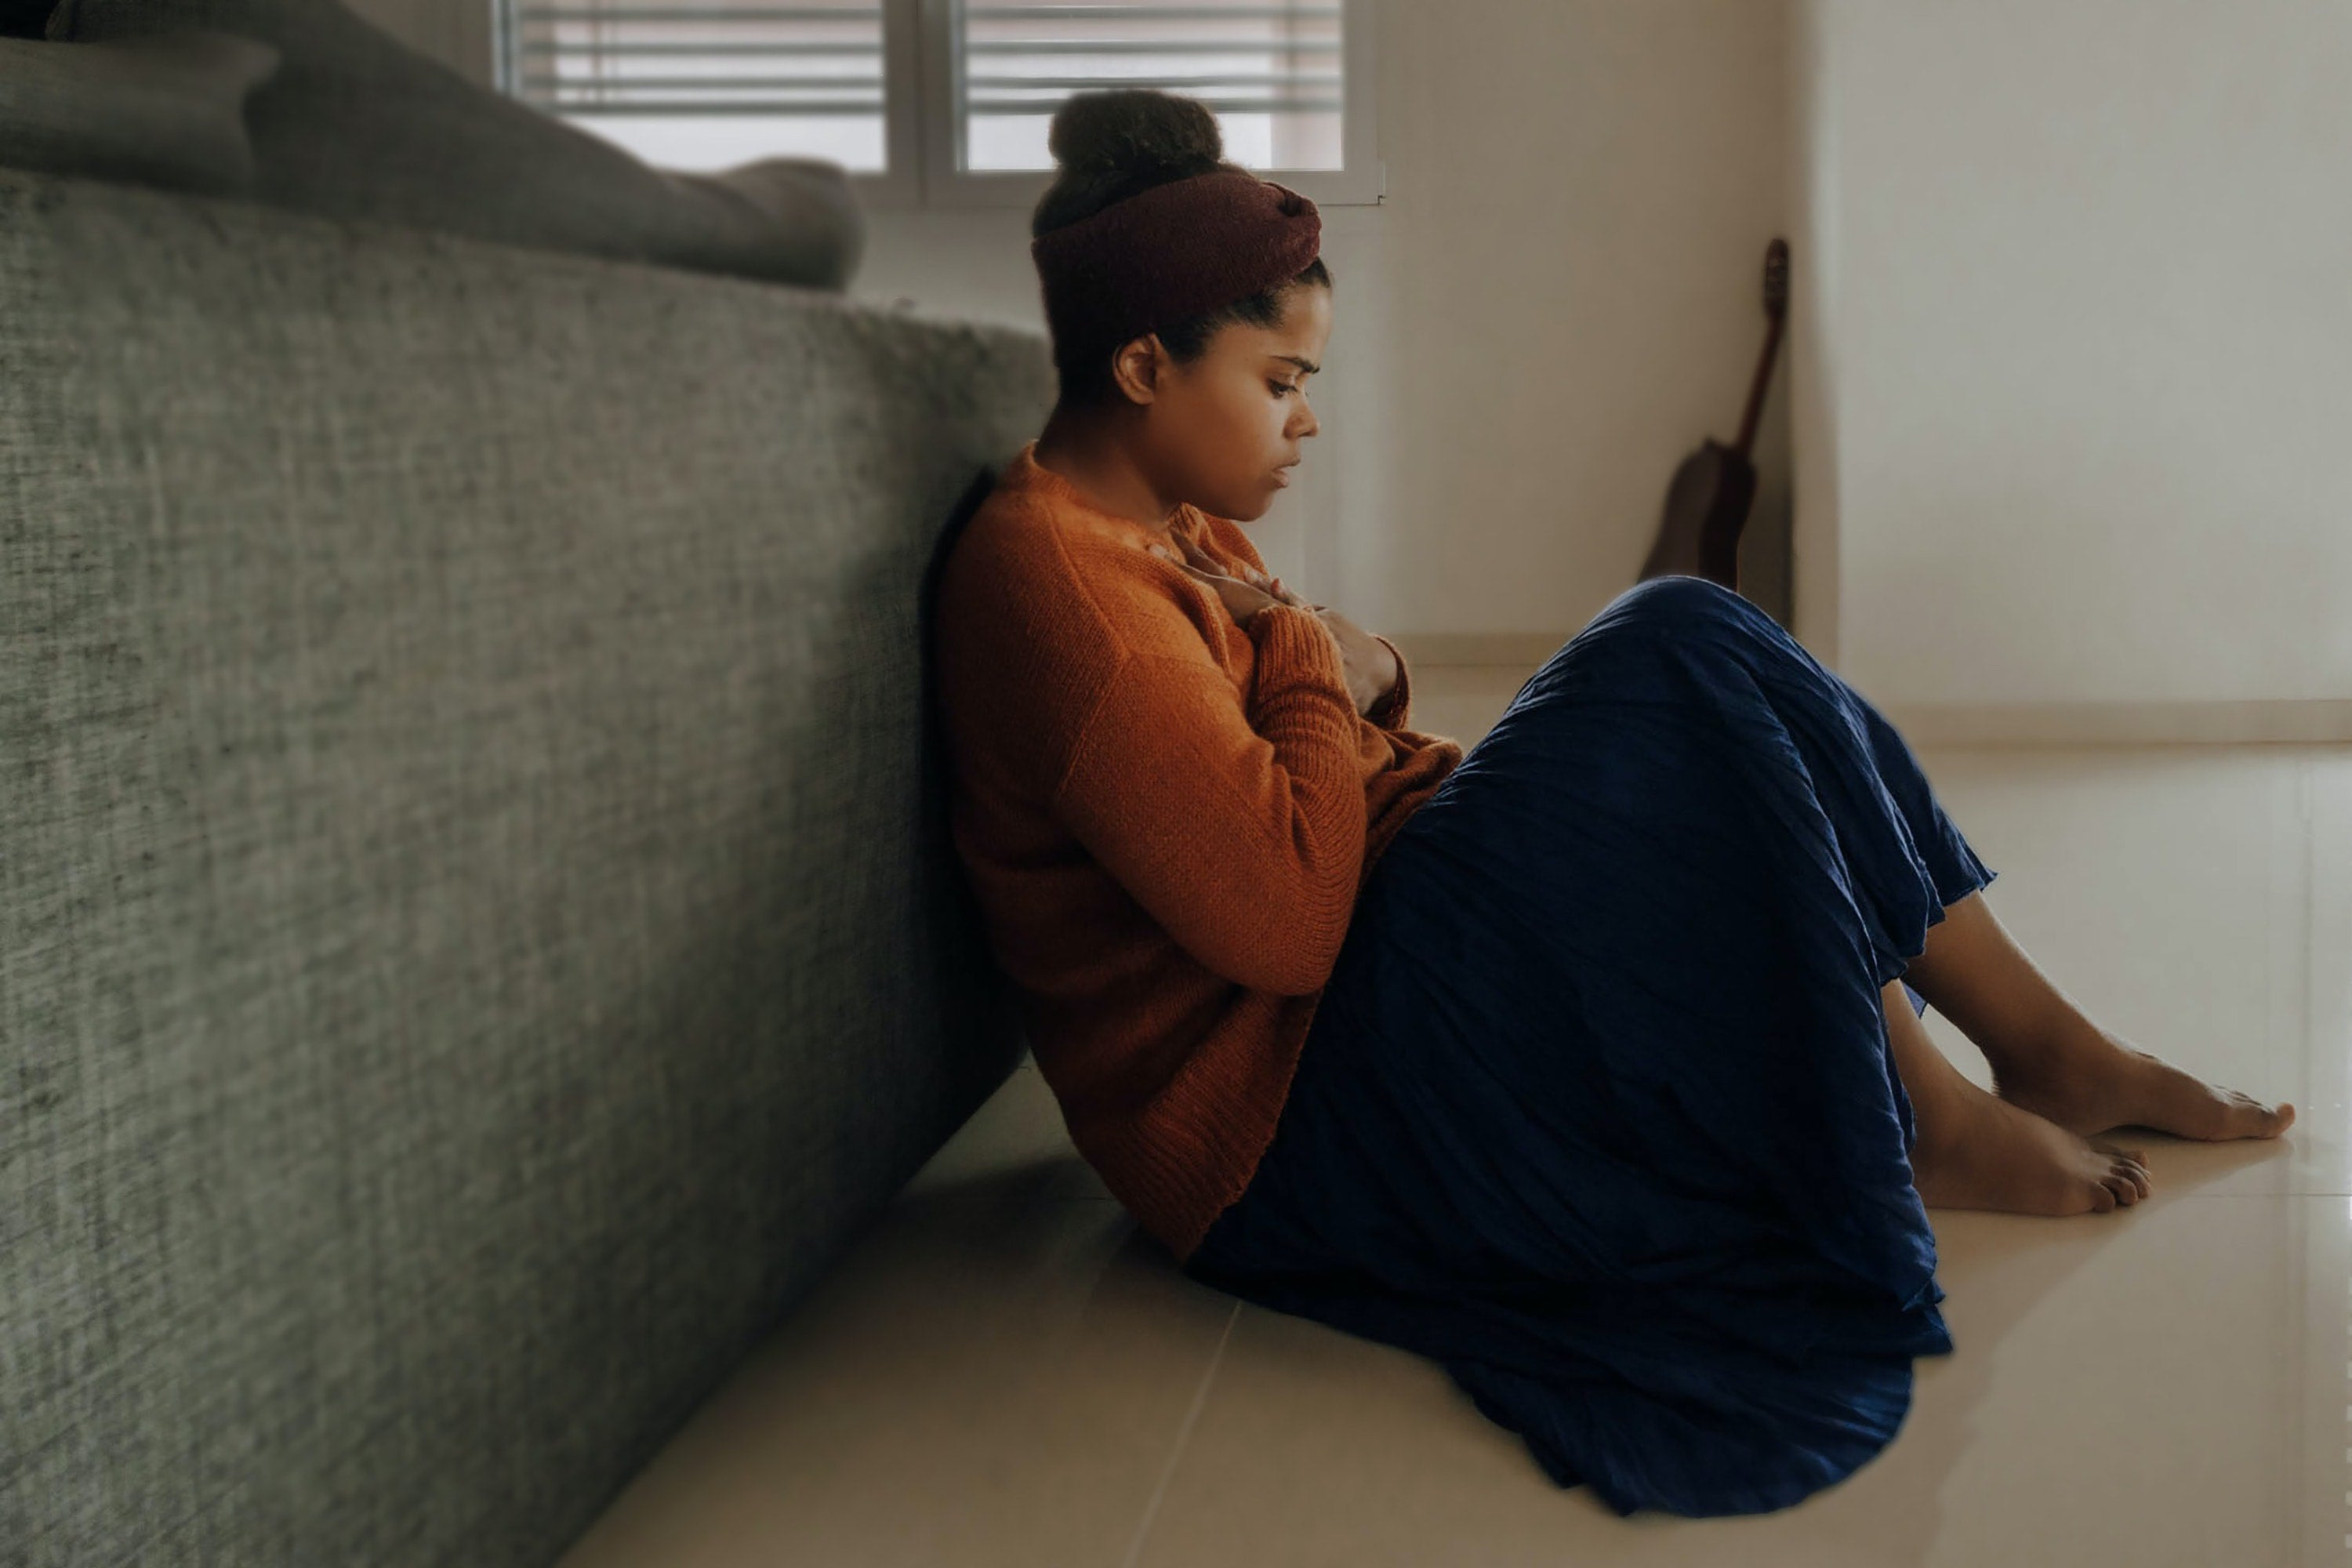 a woman sits on the floor embracing herself sadly